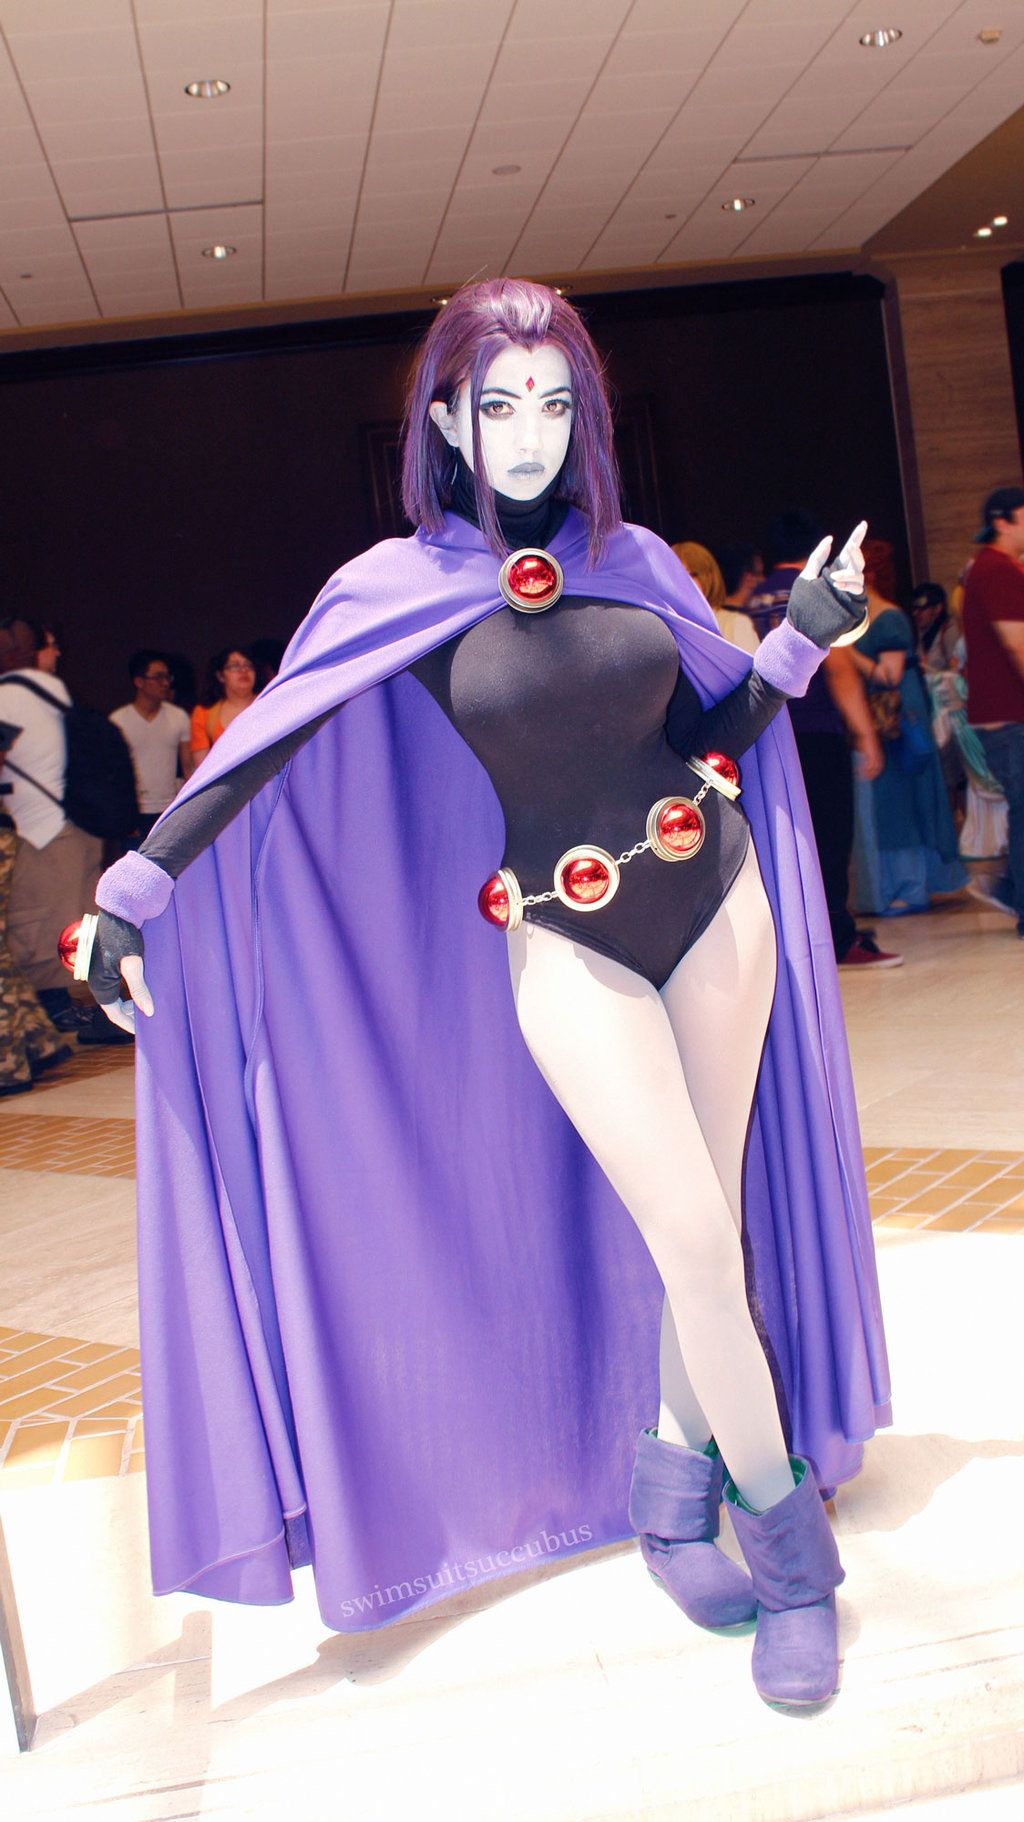 Raven Cosplay 2016 By Swimsuitsuccubus Find Hcc On Youtube